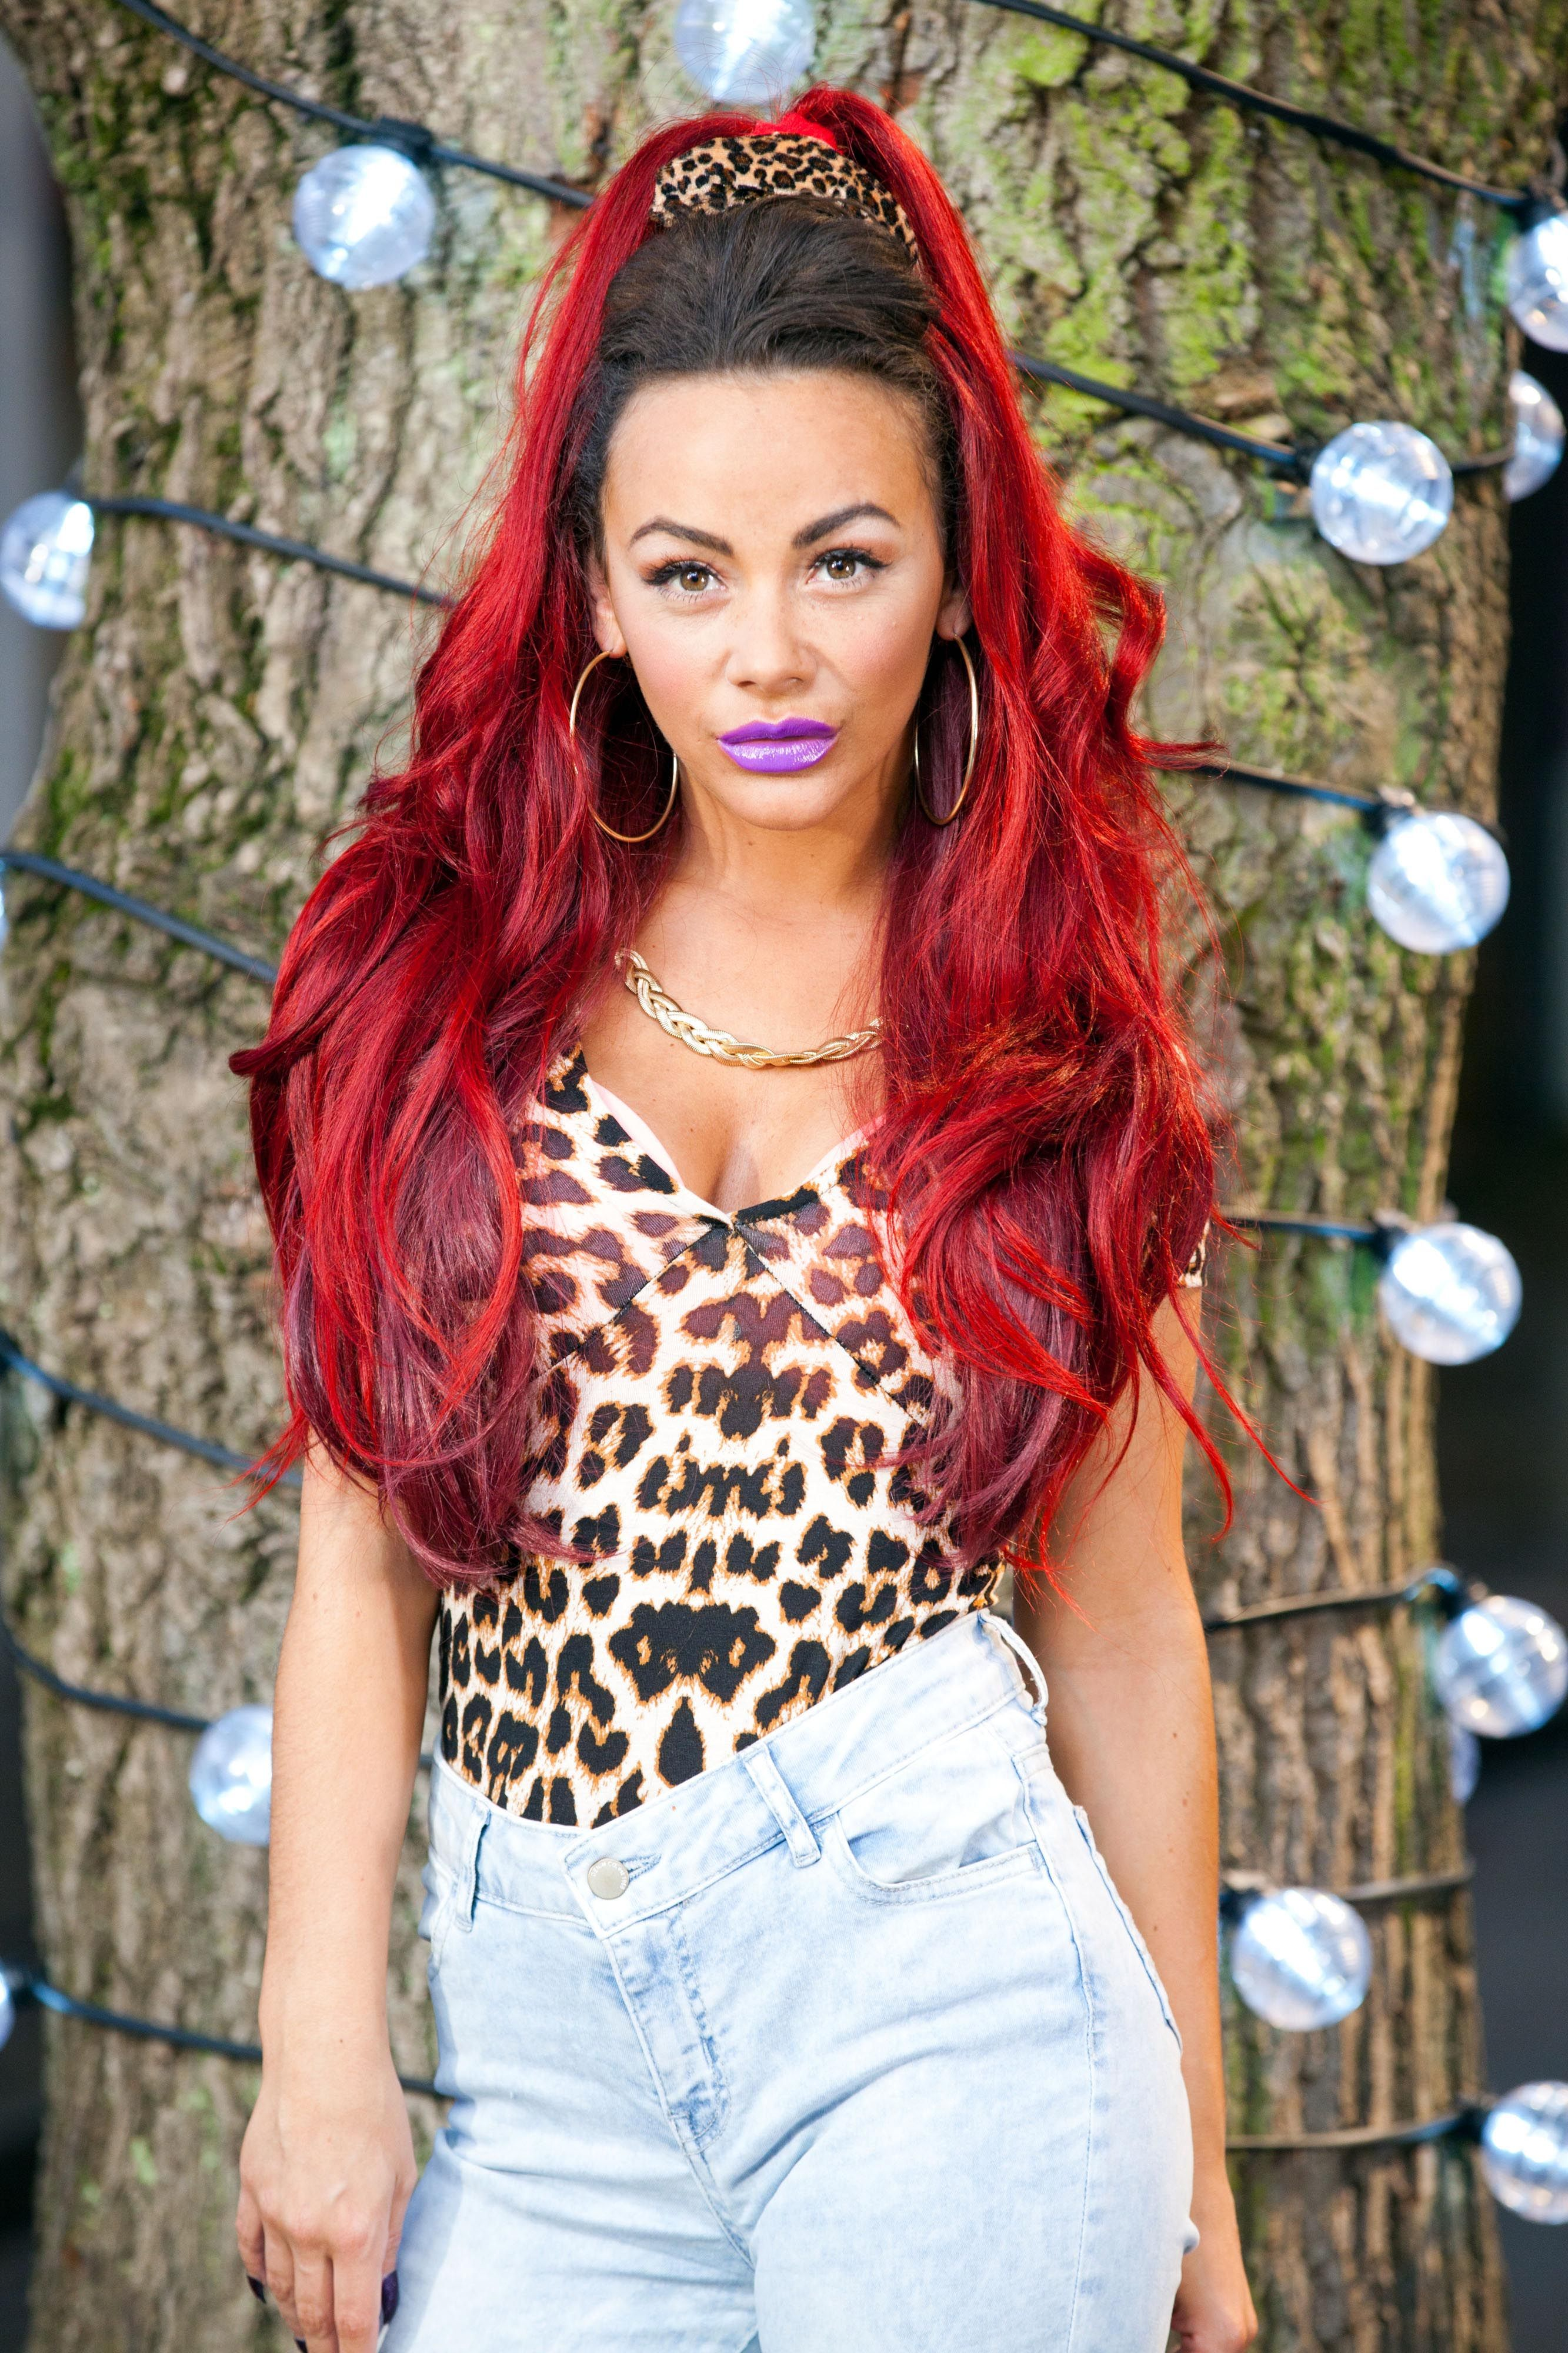 938f7946b278a Hollyoaks actress Chelsee Healey is expecting her first child